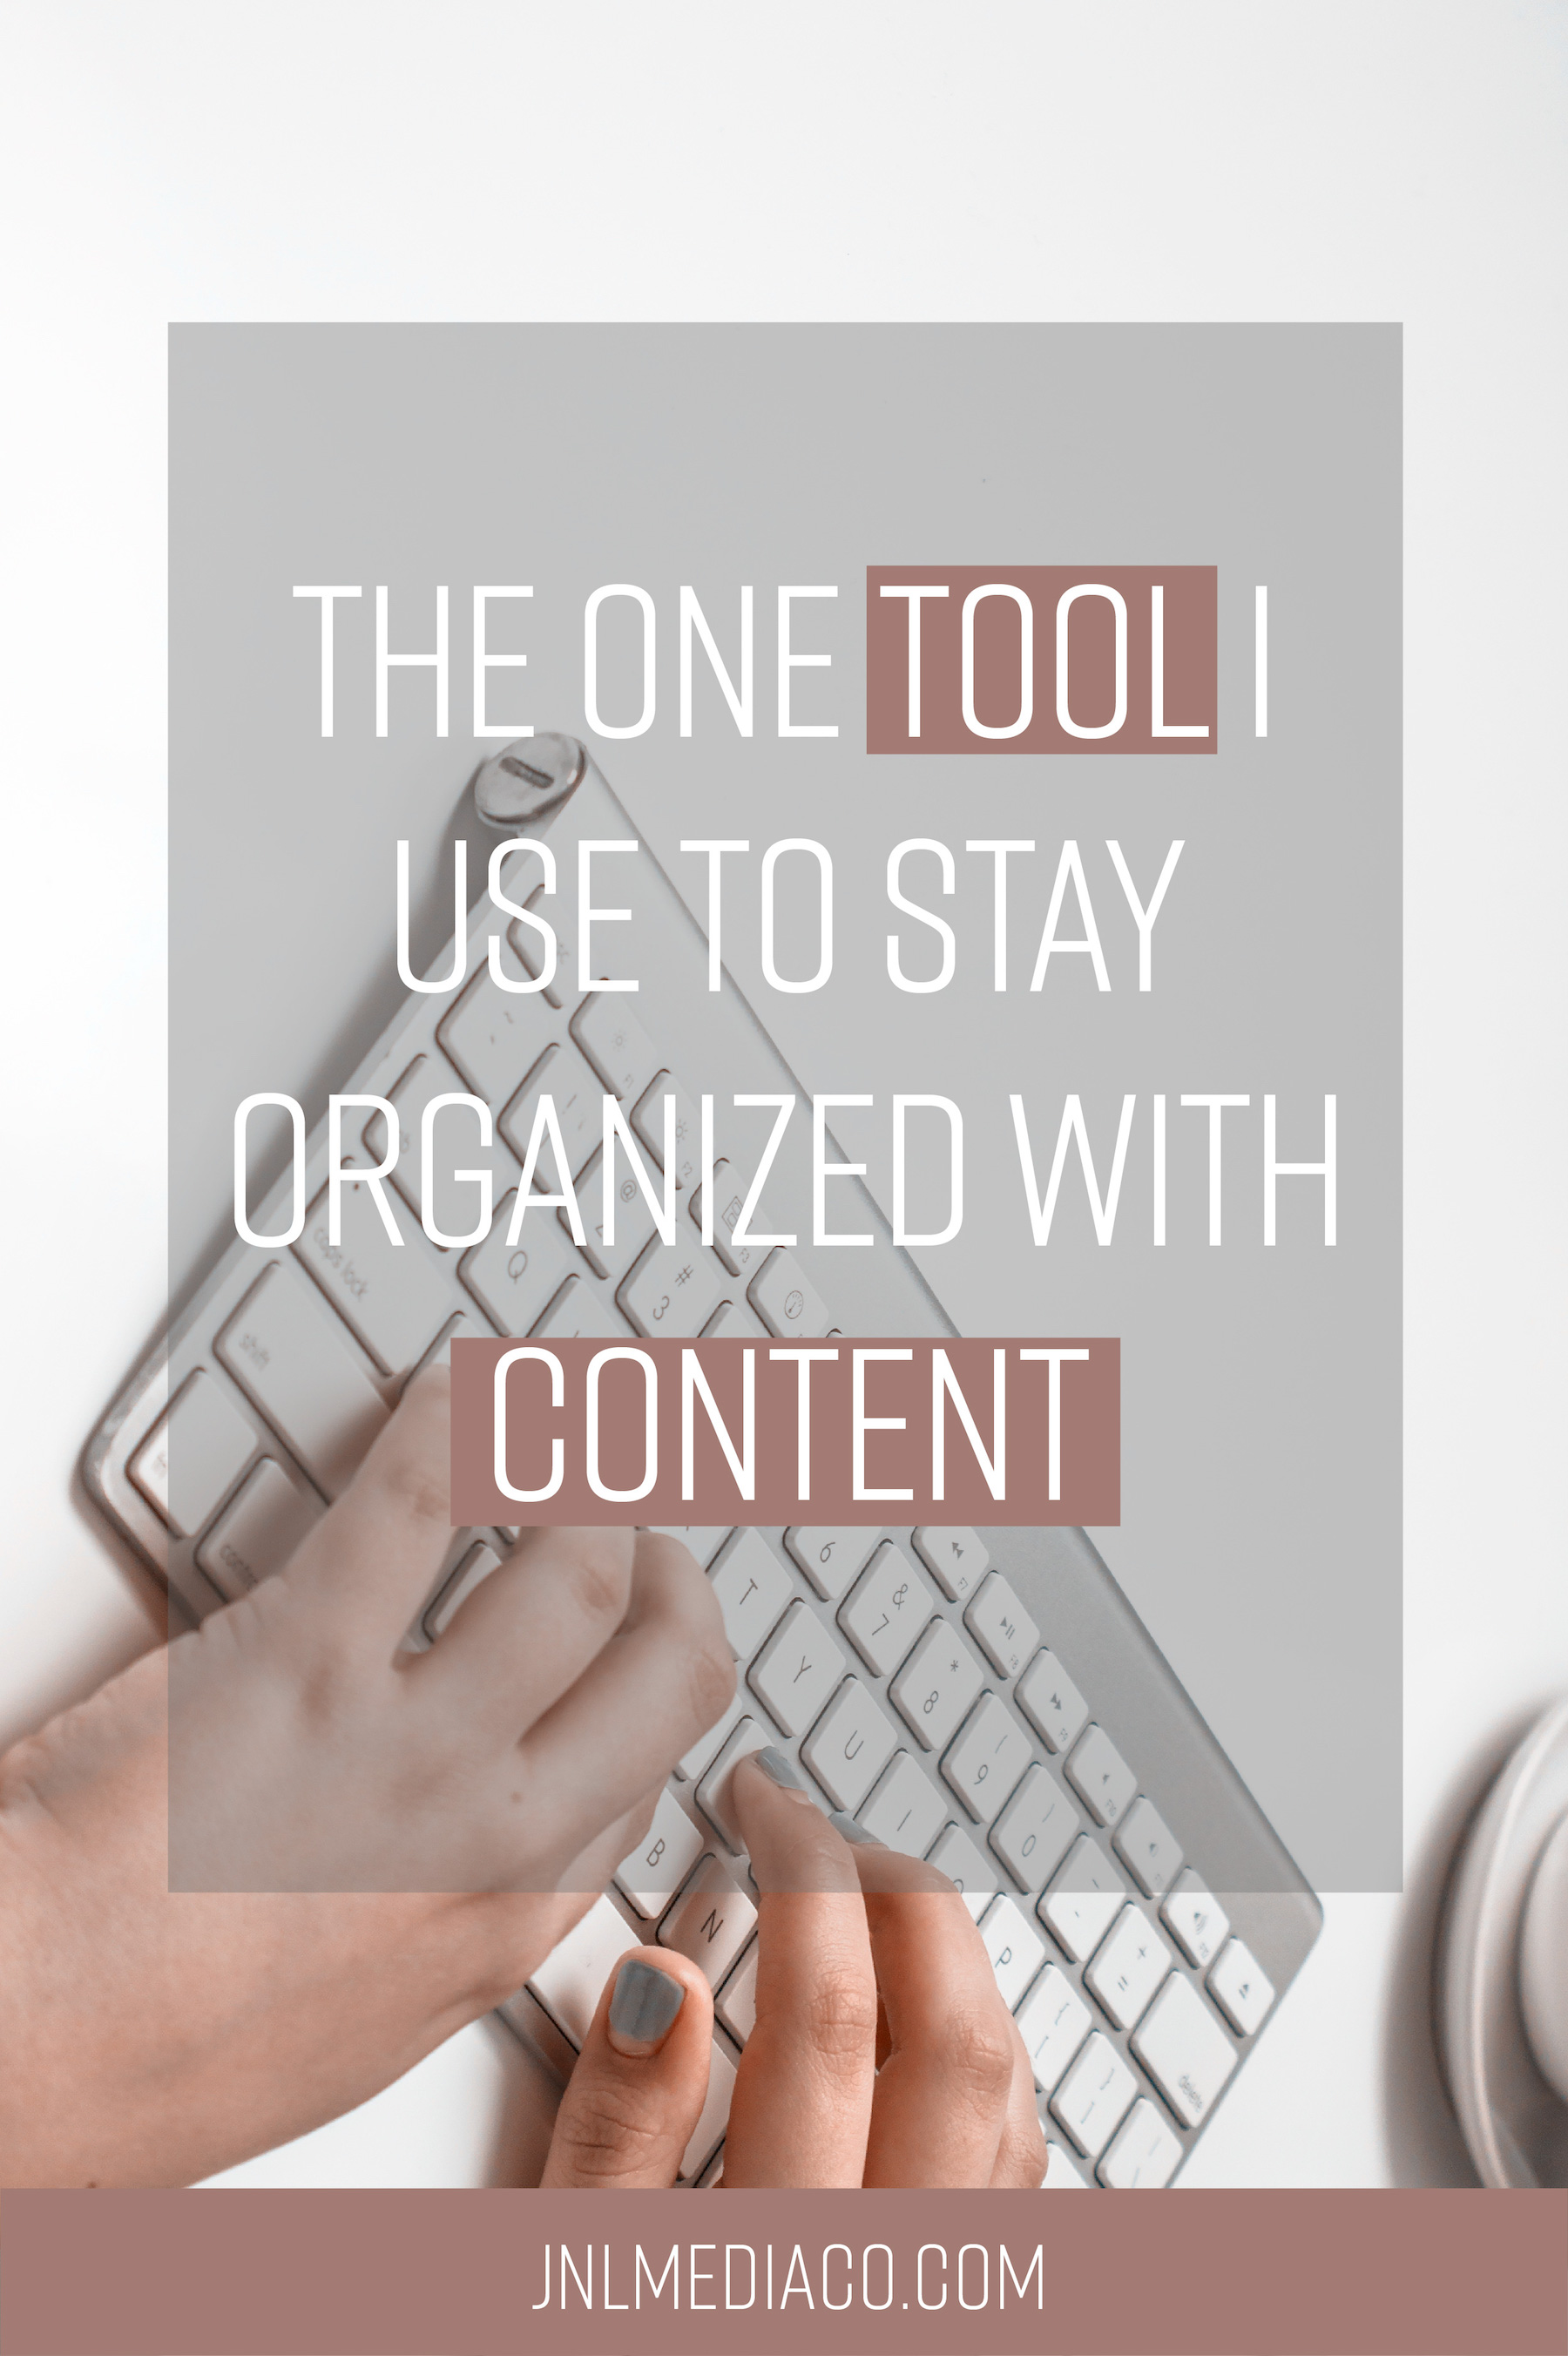 Content creation is so important these days if you're not treating your business as a media company first and foremost then you're doing something wrong. Once you make the commitment to put out content in a consistent manner then the real work begins!